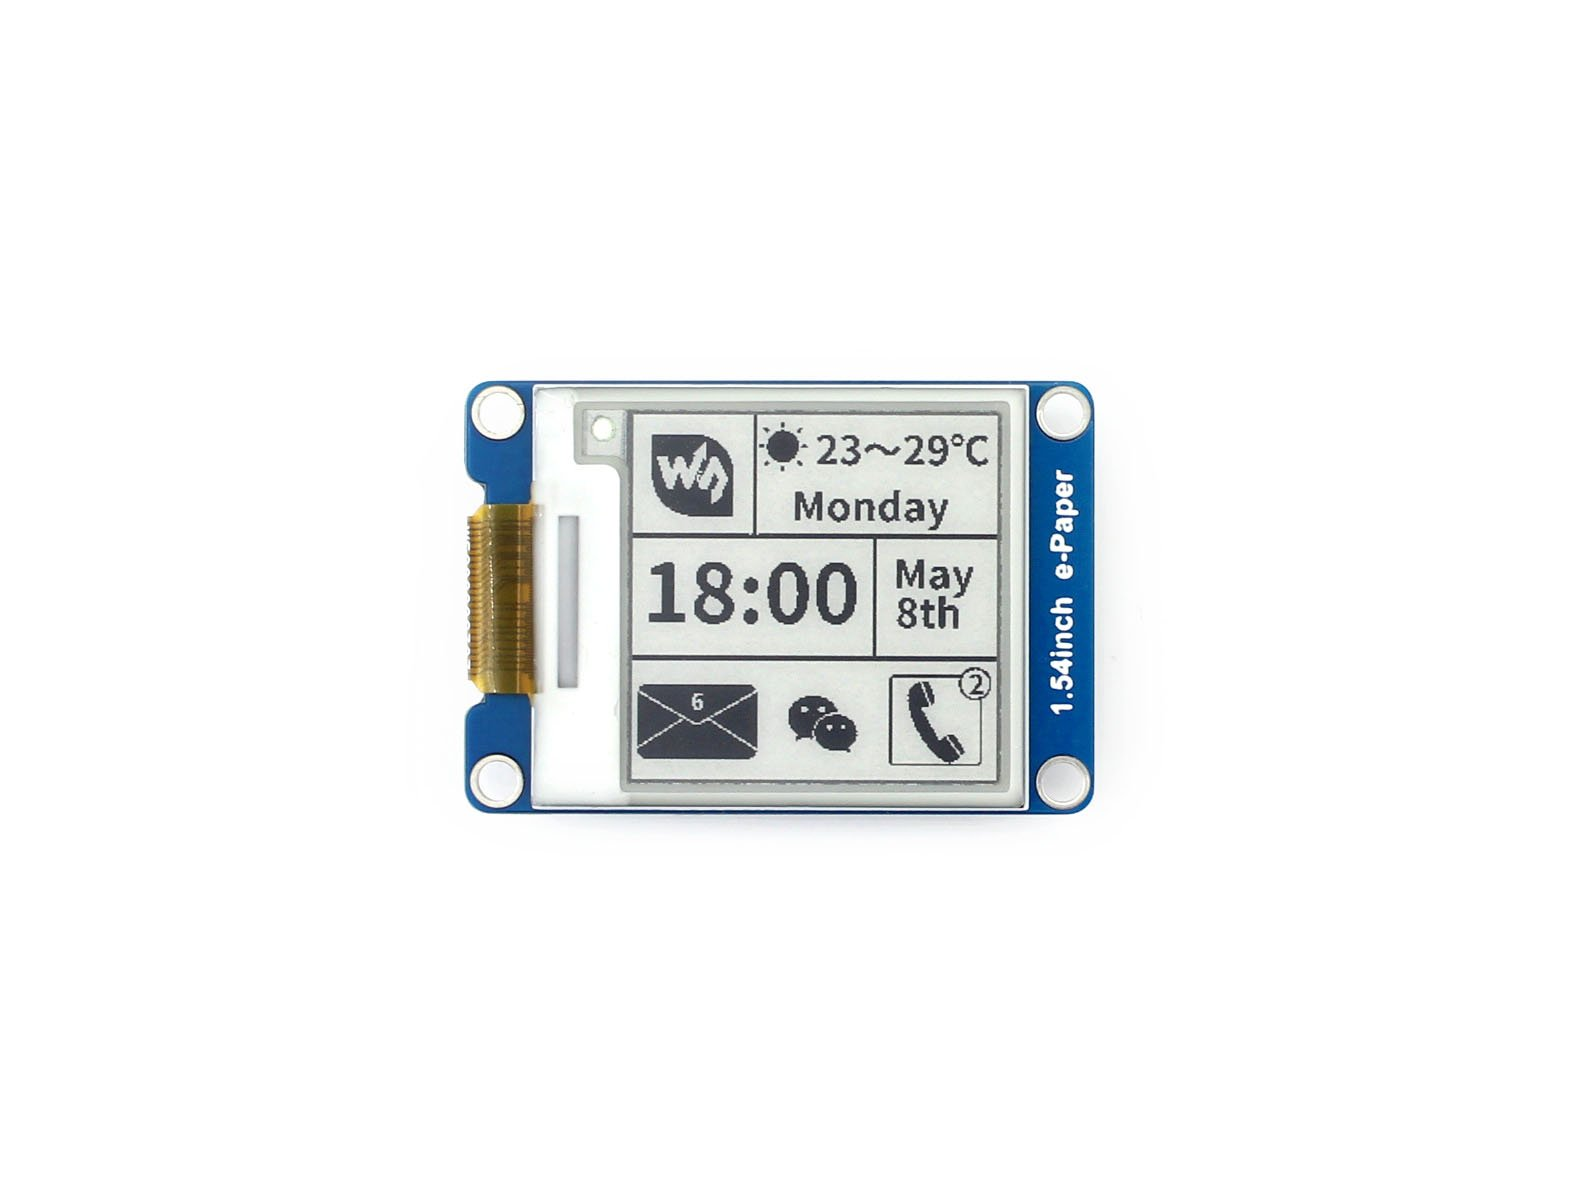 200x200, 1.54inch E-Ink display module,1.54inch e-Paper,SPI interface,Supports partial refresh